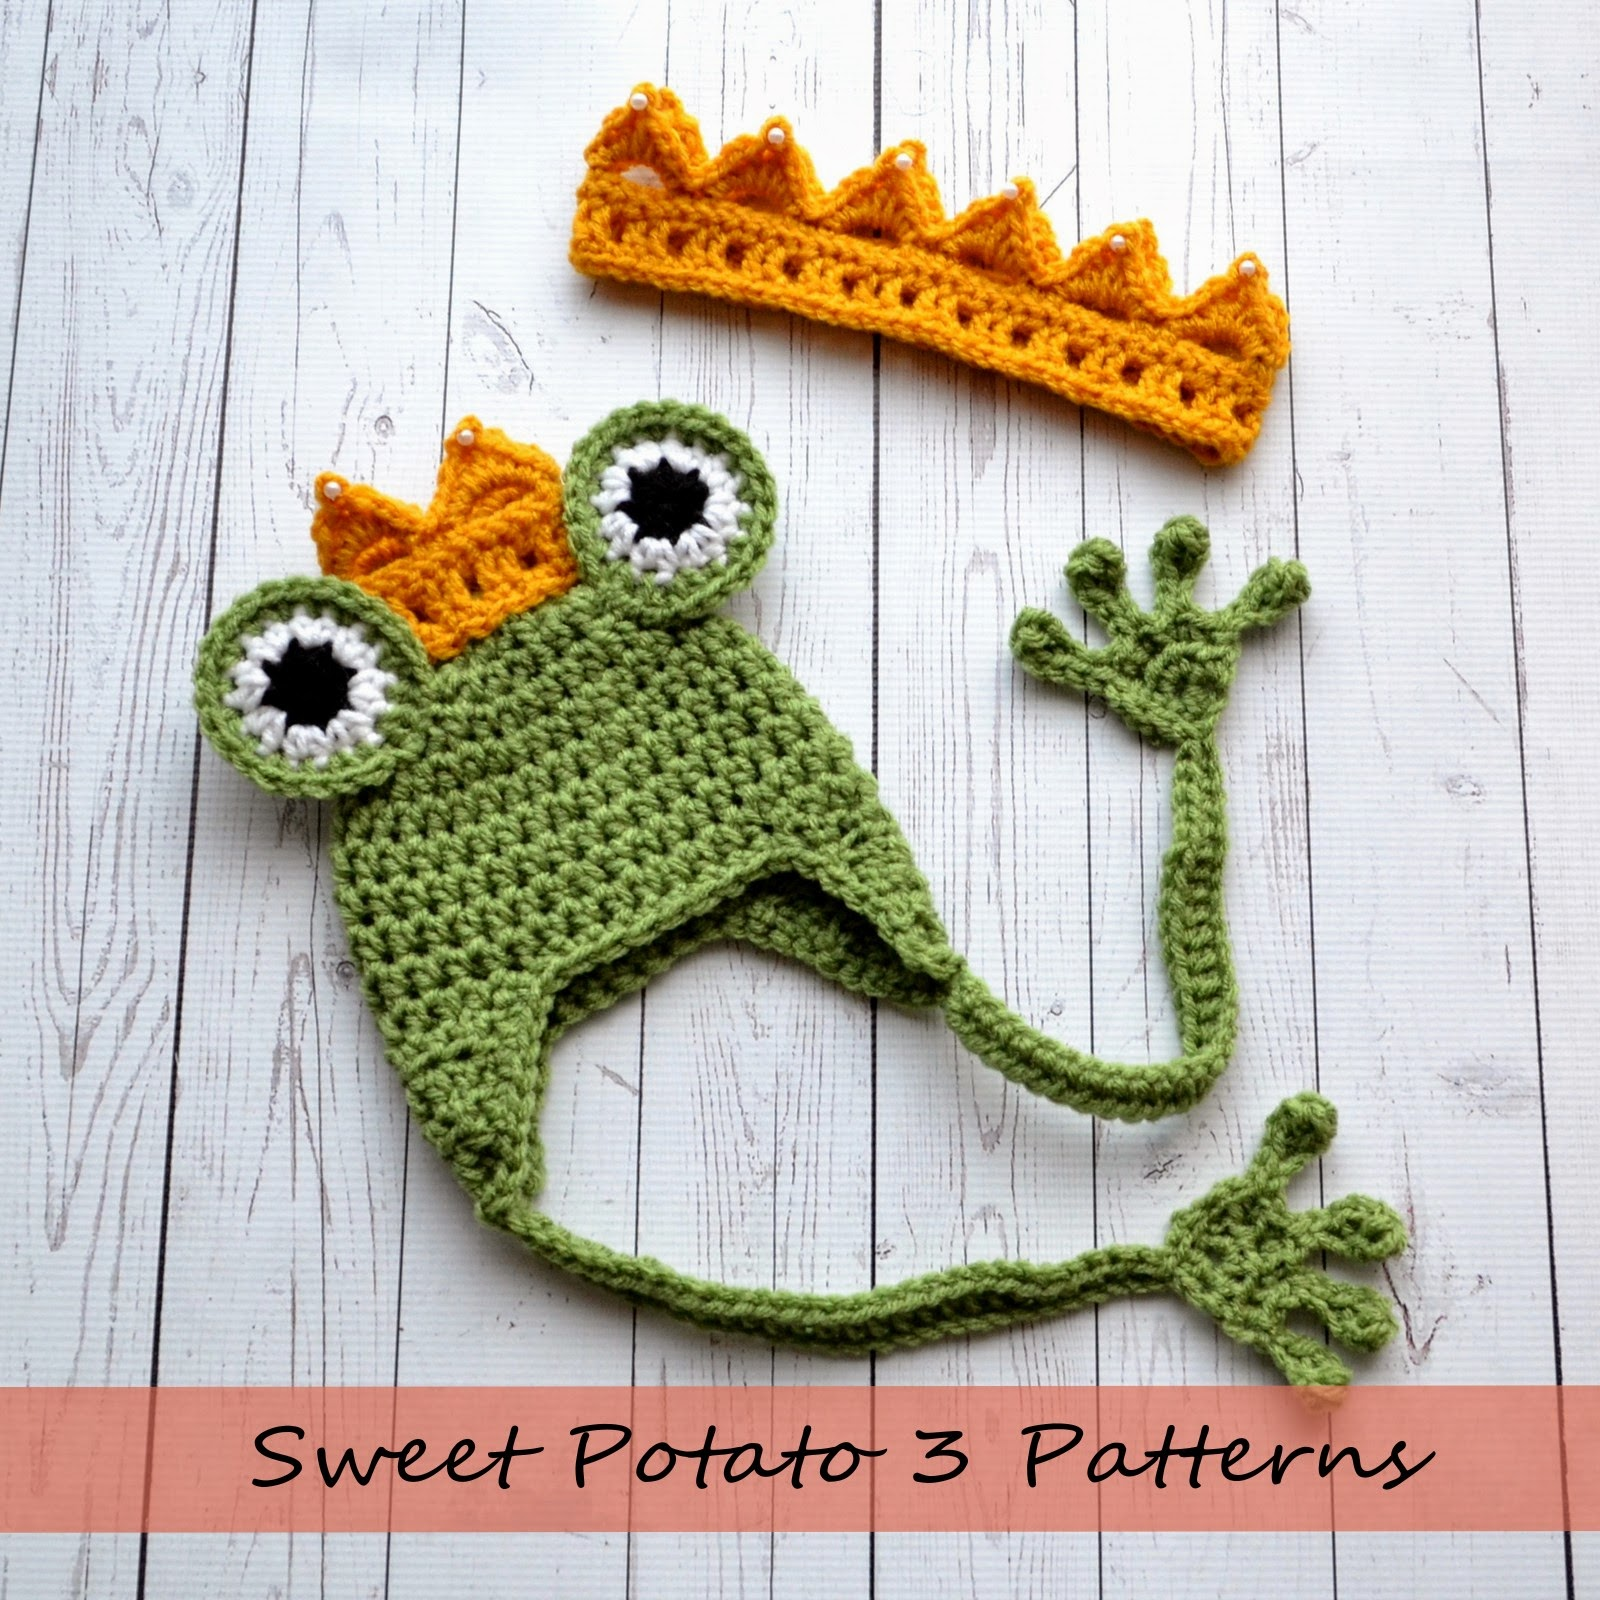 Princess And The Frog Crochet Pattern Release Sweet Potato 3